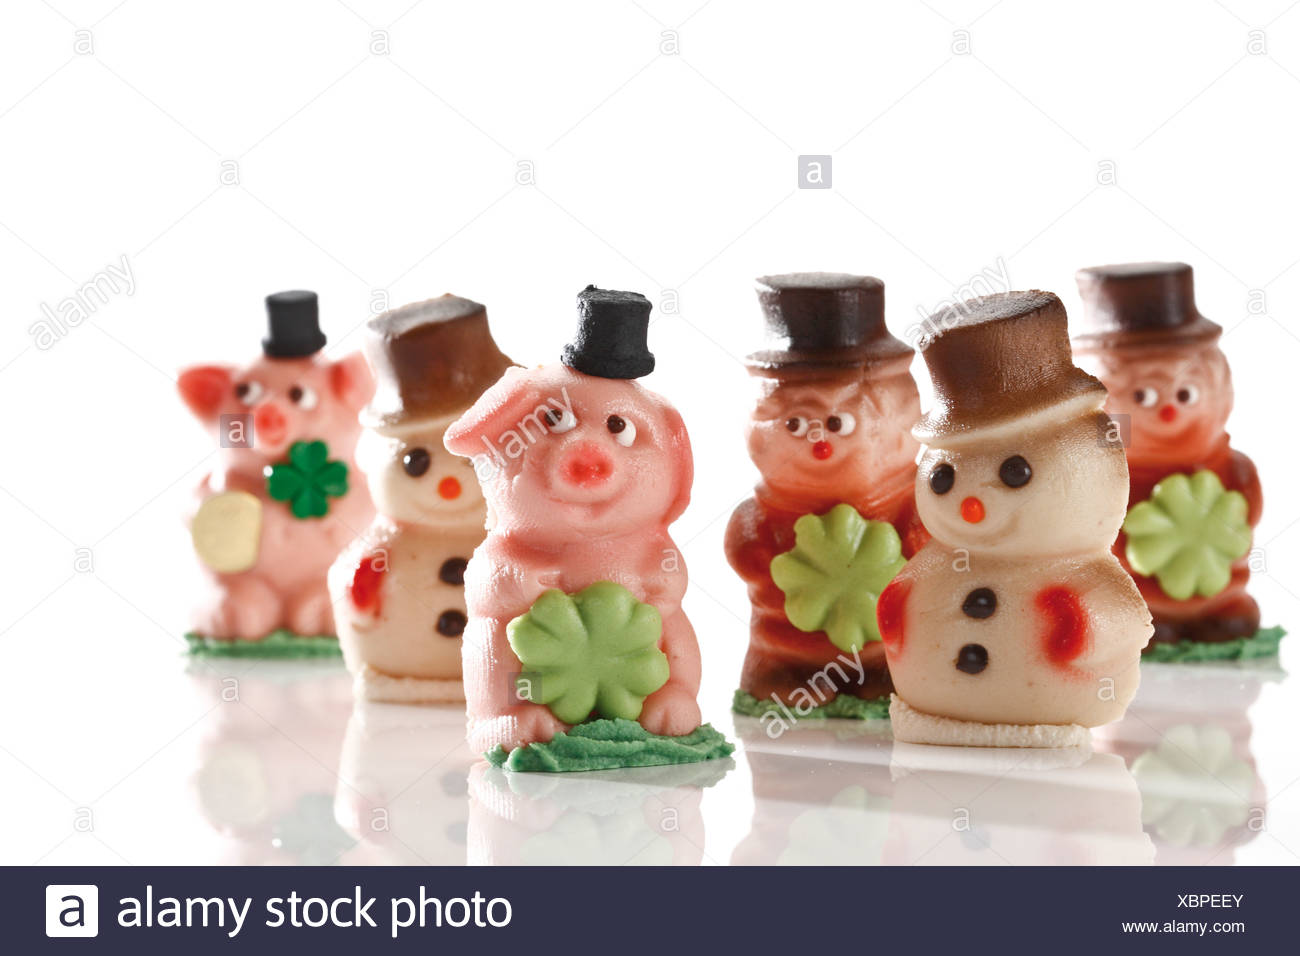 Lucky charms made of marzipan, pigs, snowmen, chimney sweeper - Stock Image